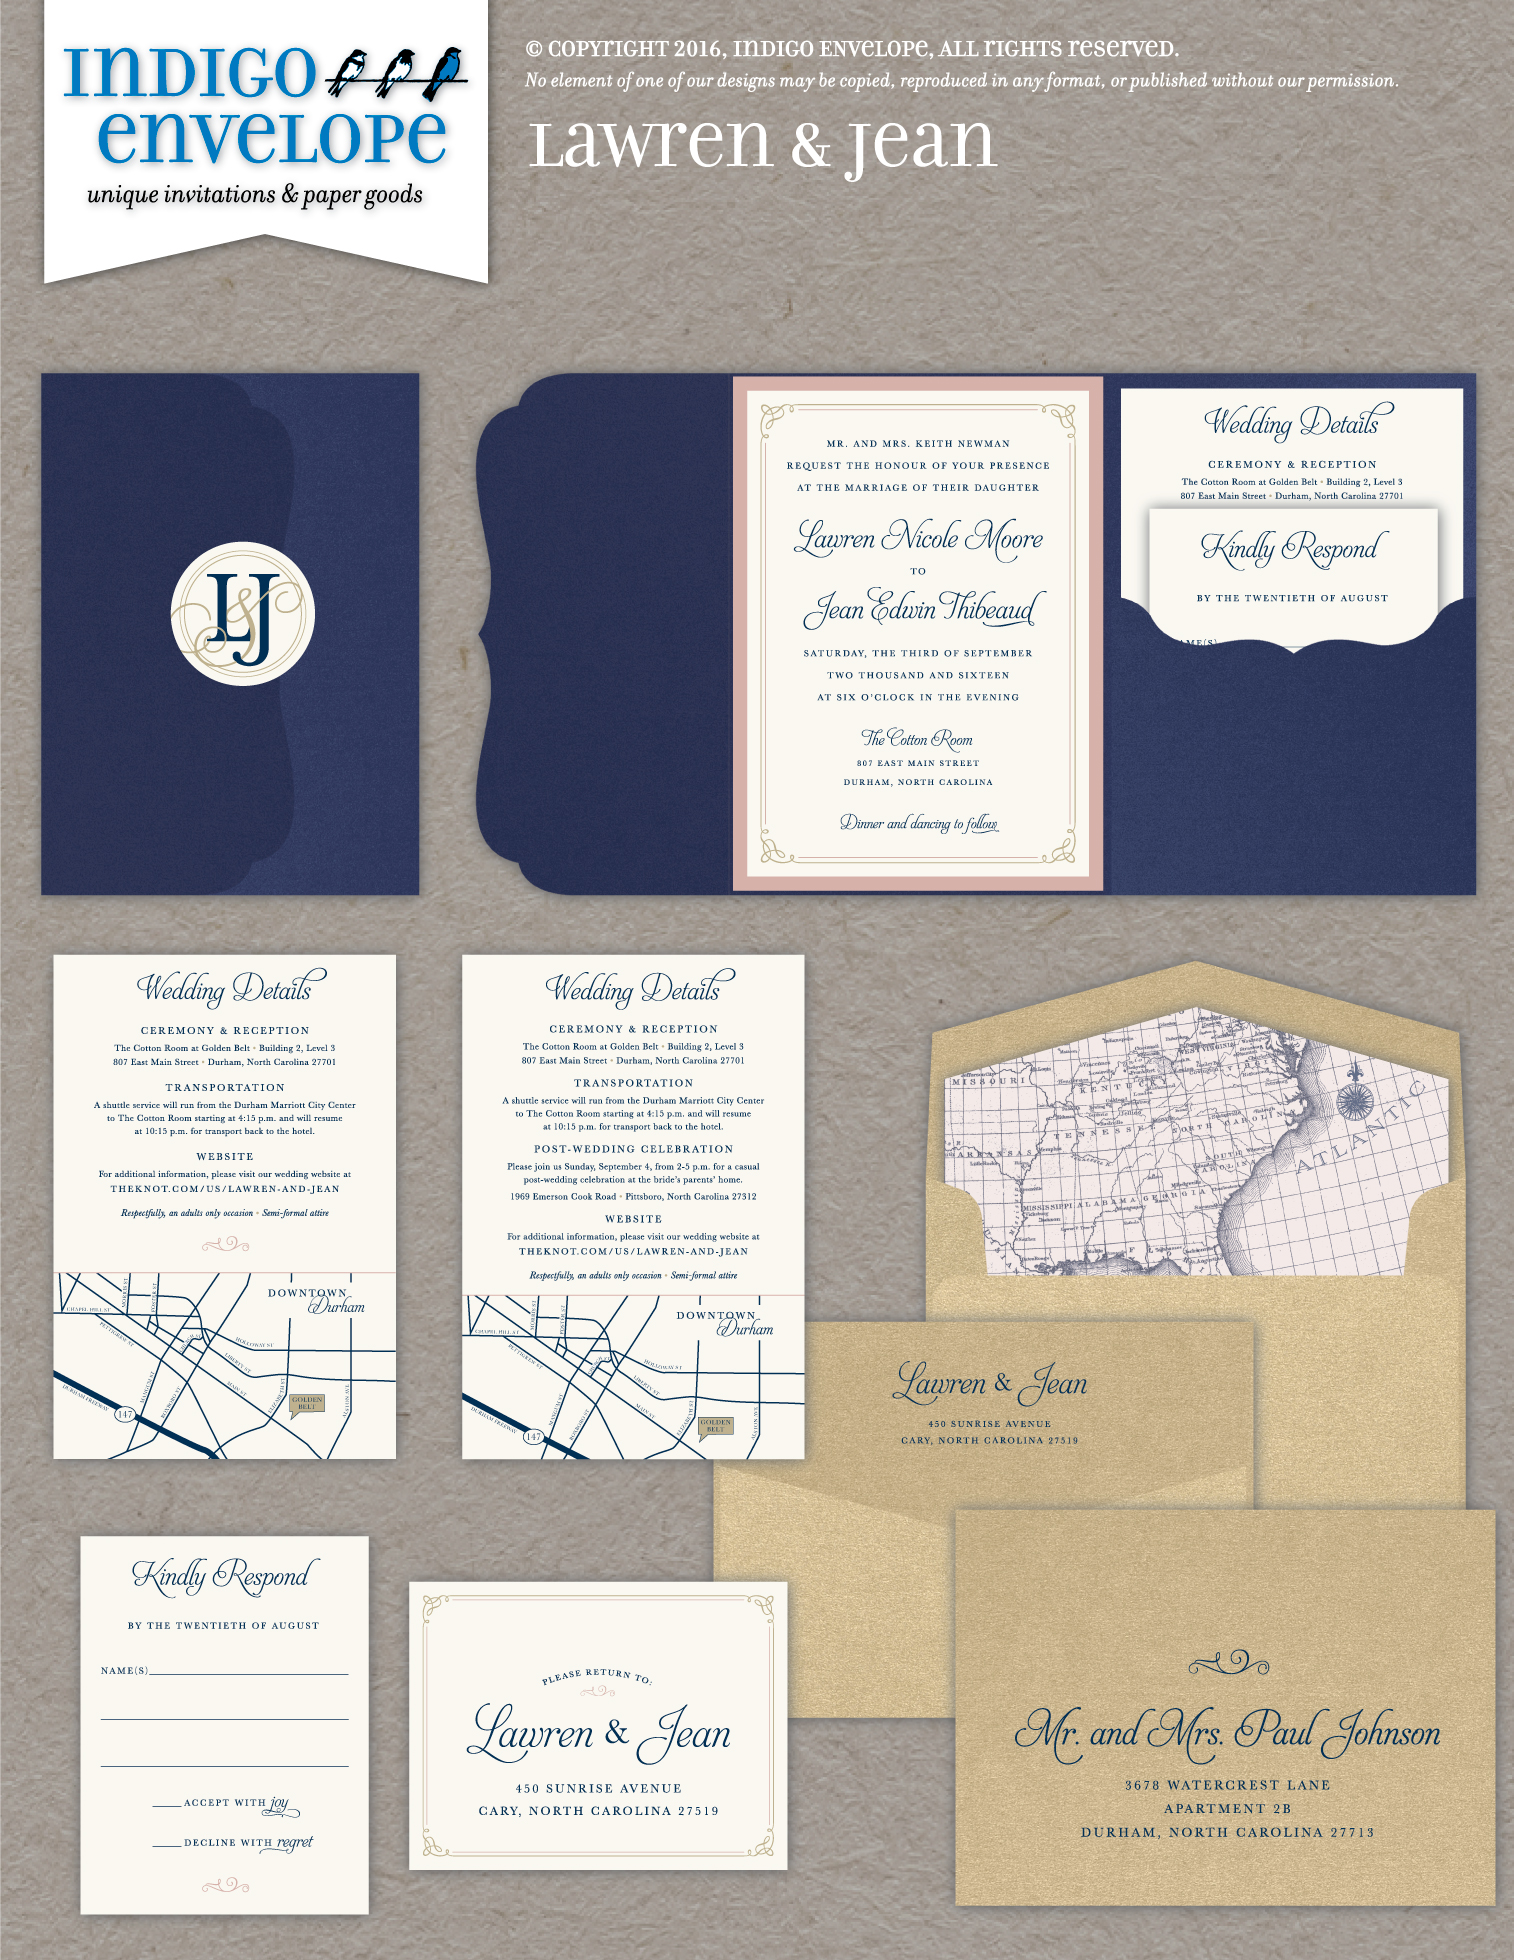 Indigo Envelope Monogrammed Wedding Invitation